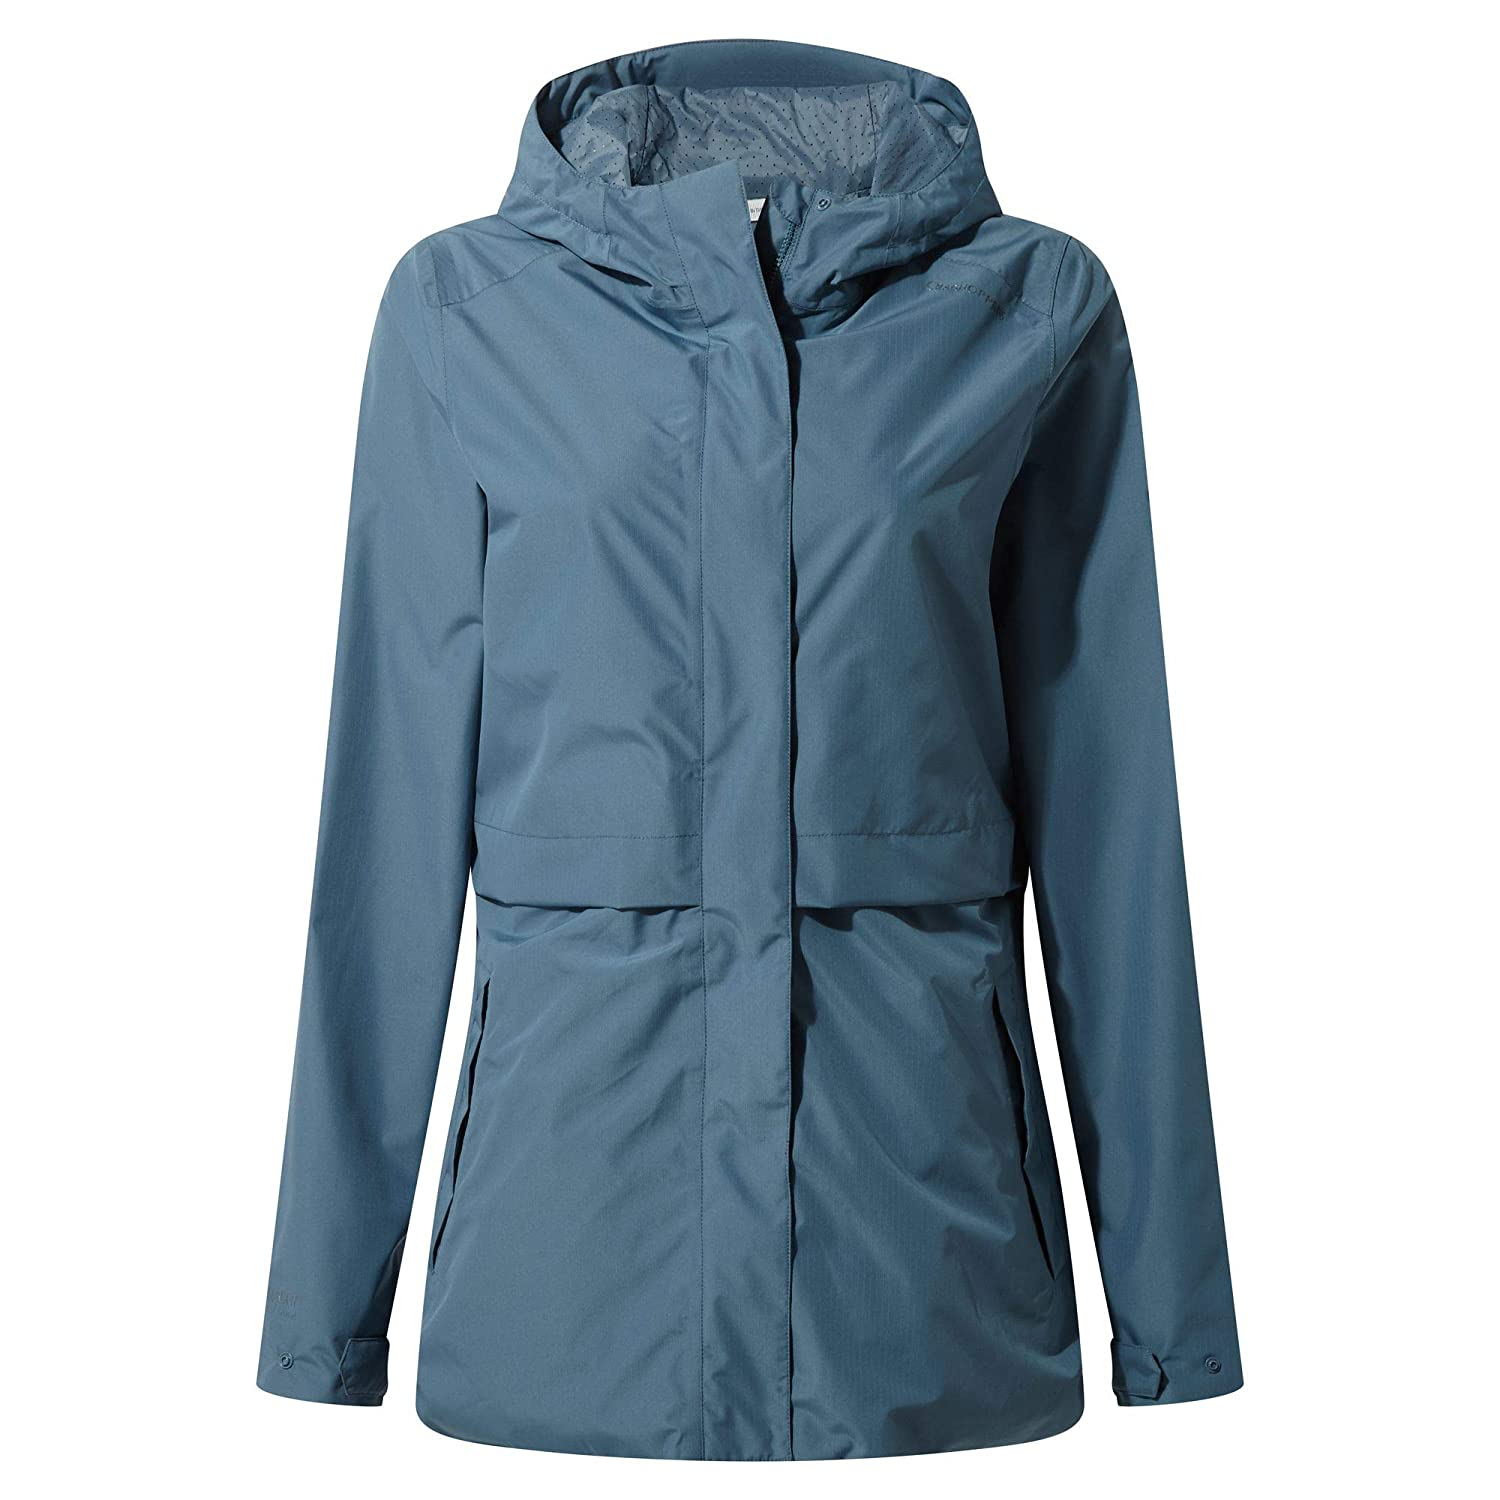 Craghoppers Womens Minori Jacket